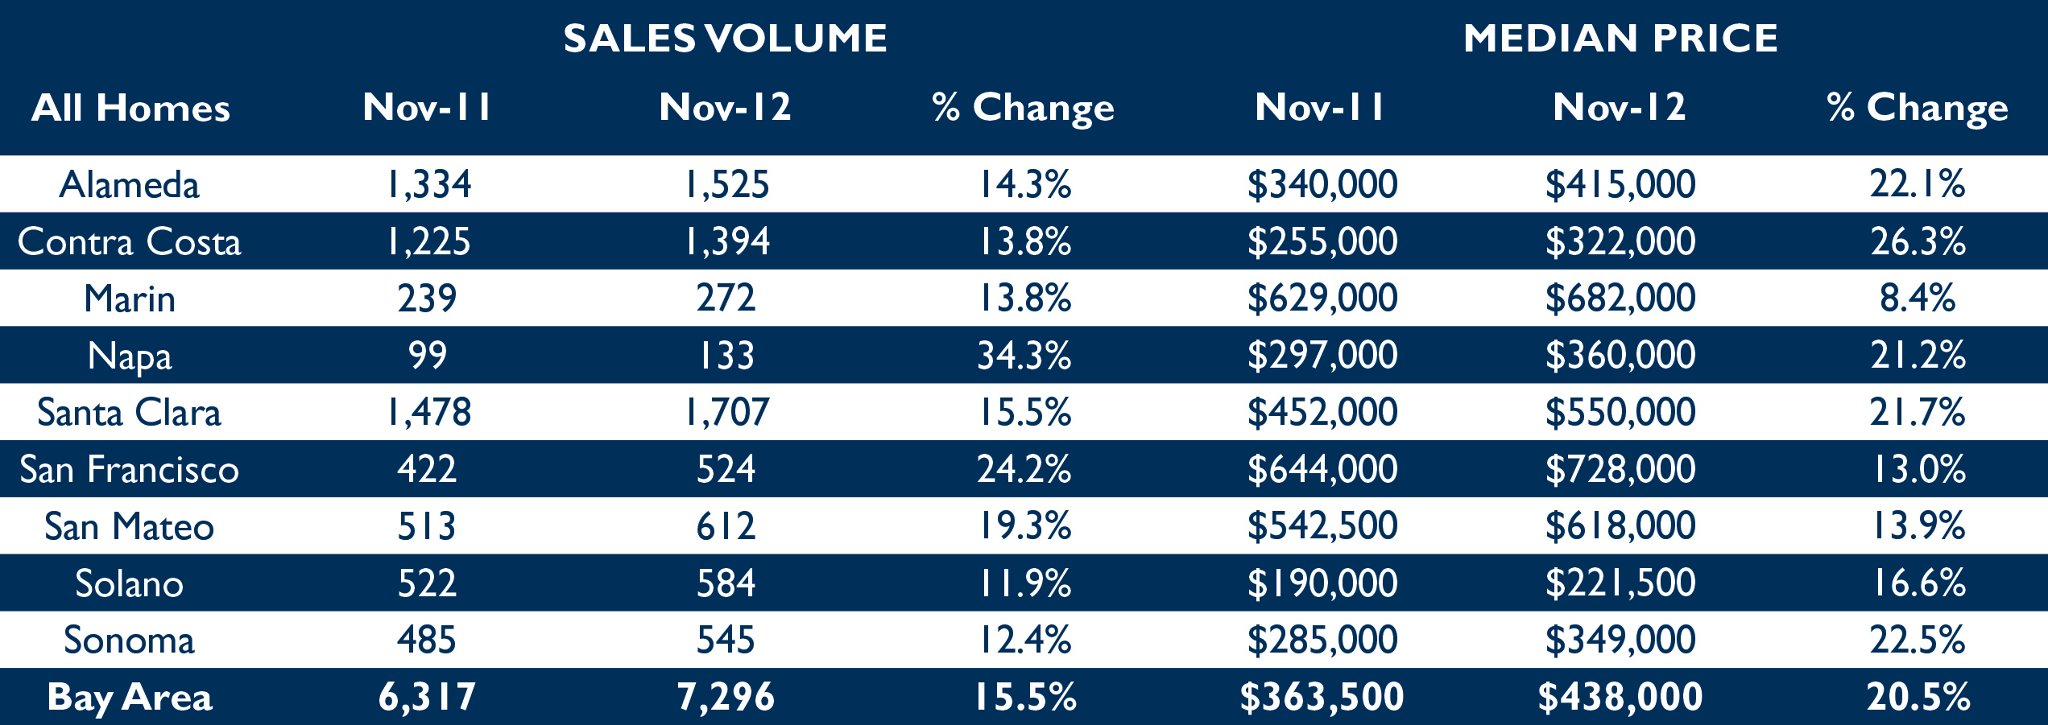 East Bay Real Estate Home Sales and Prices November 2012